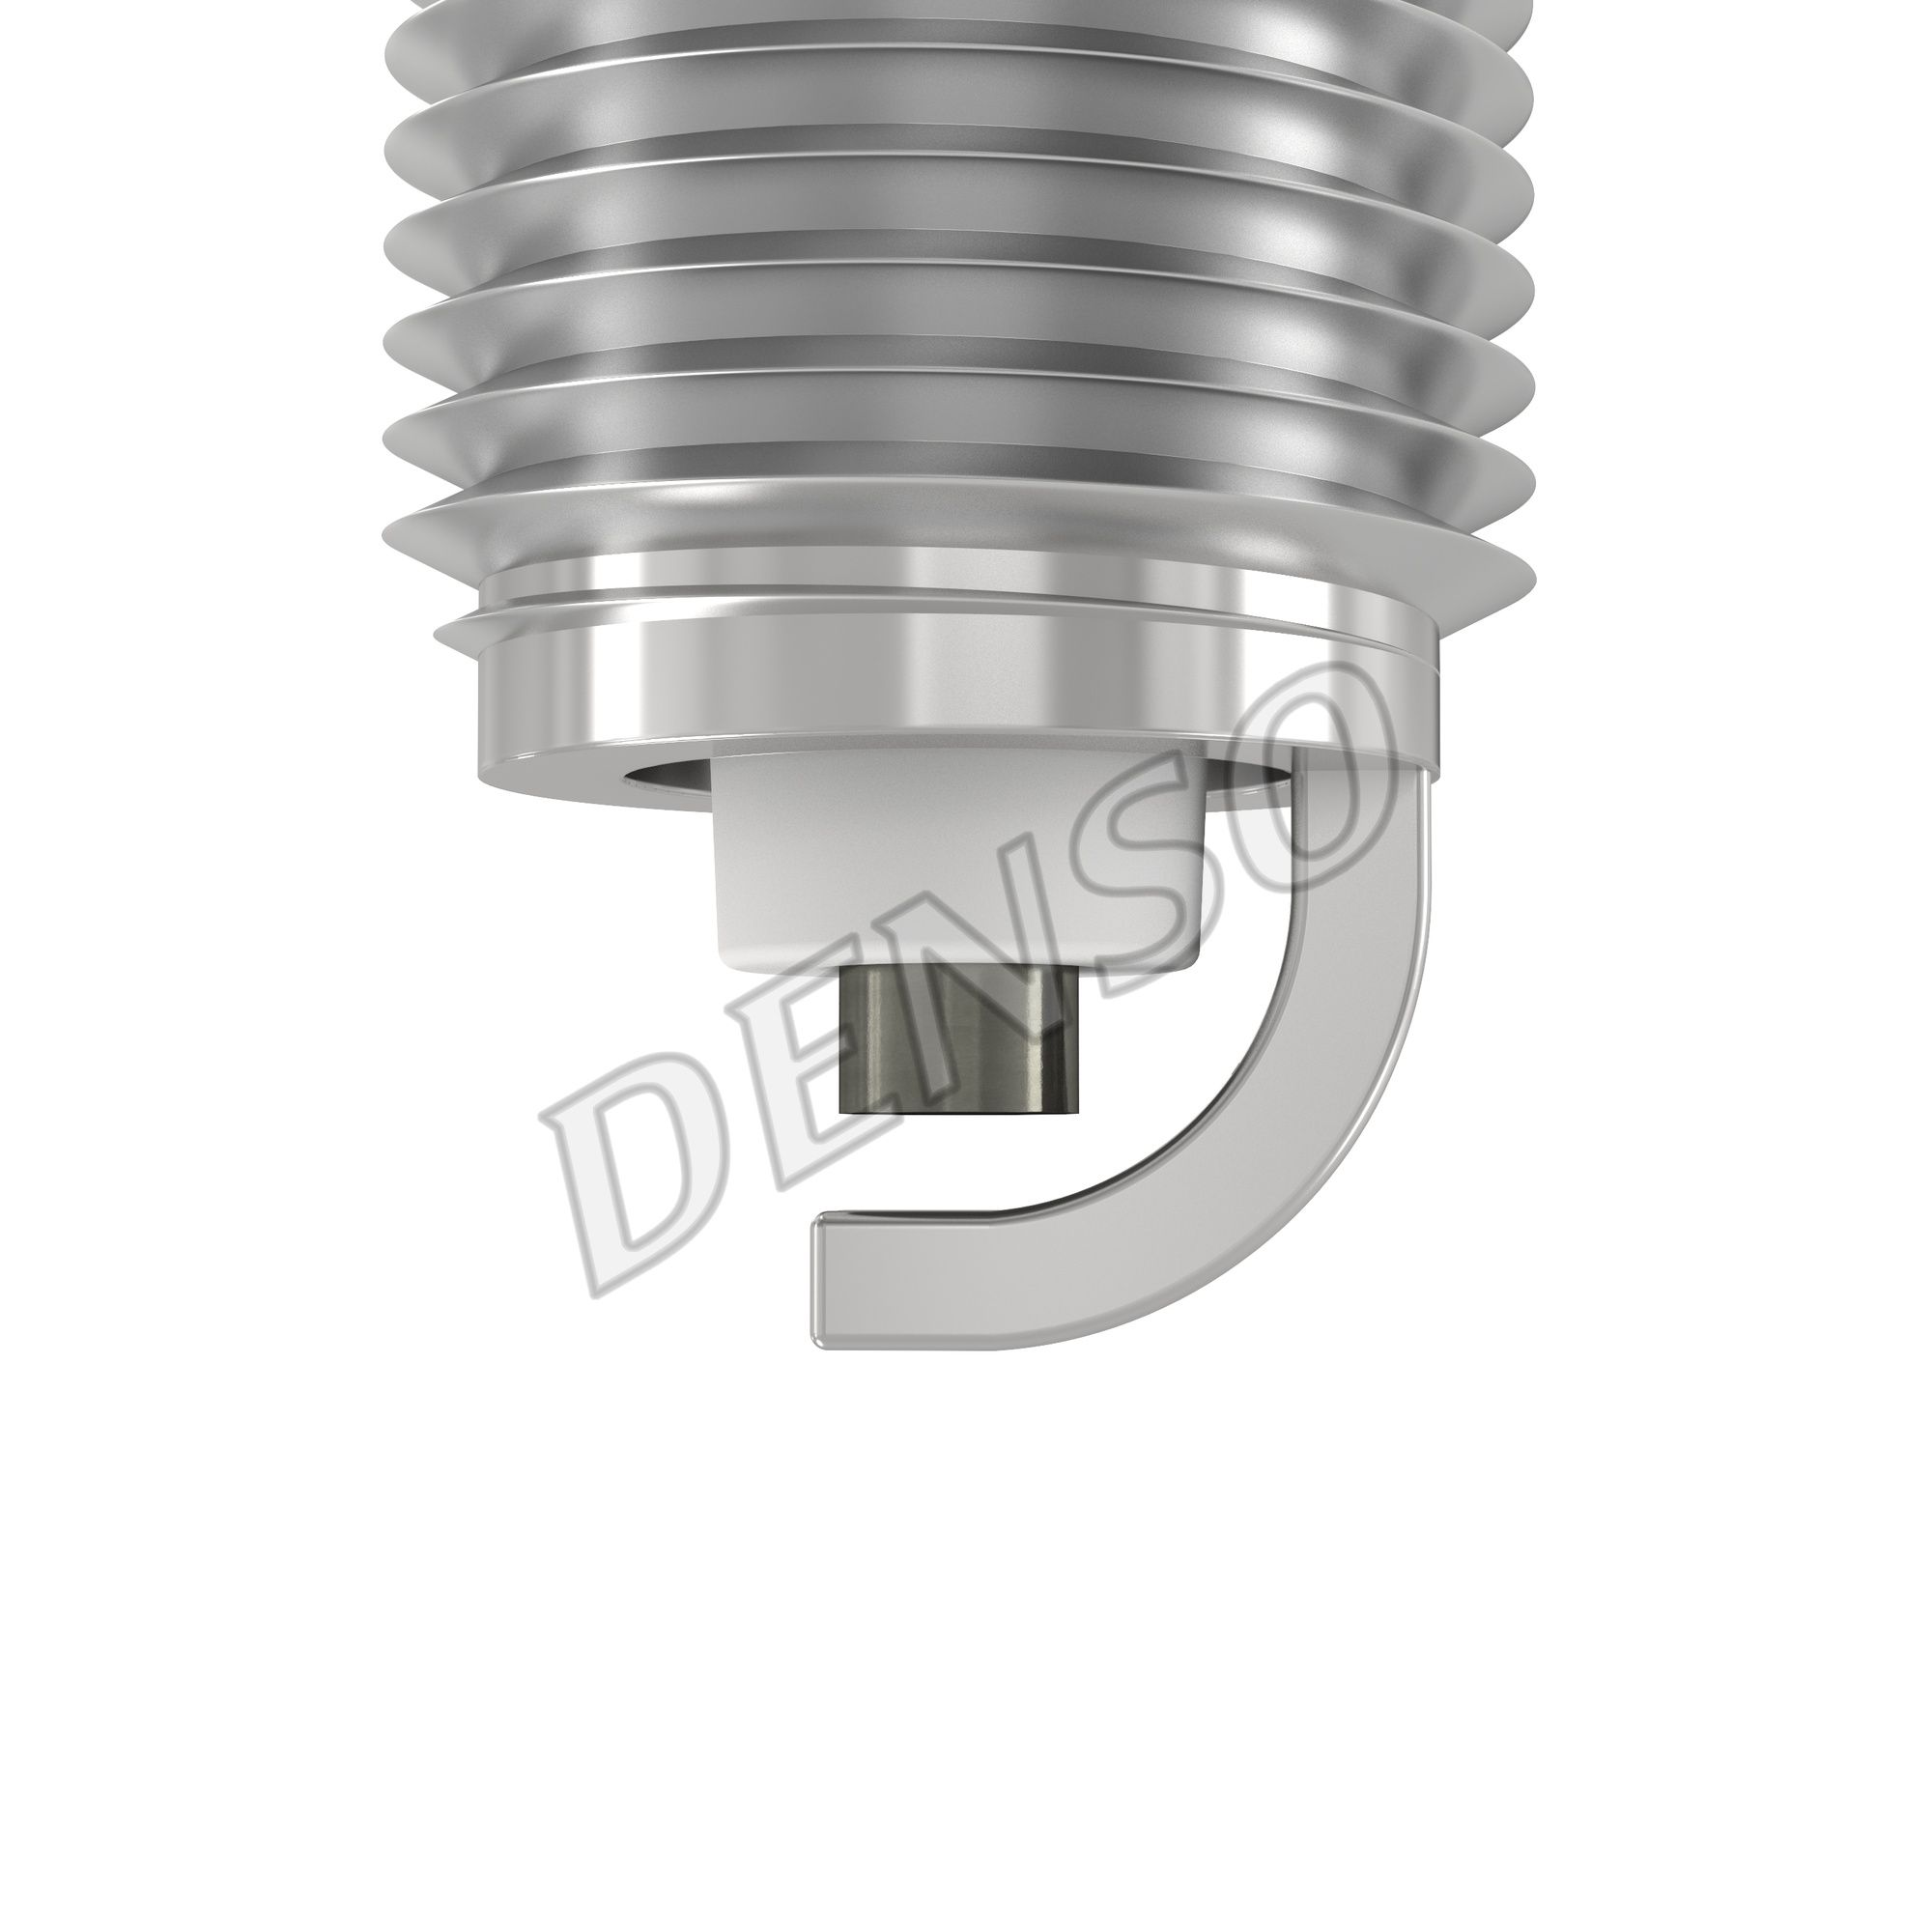 D167 DENSO from manufacturer up to - 25% off!